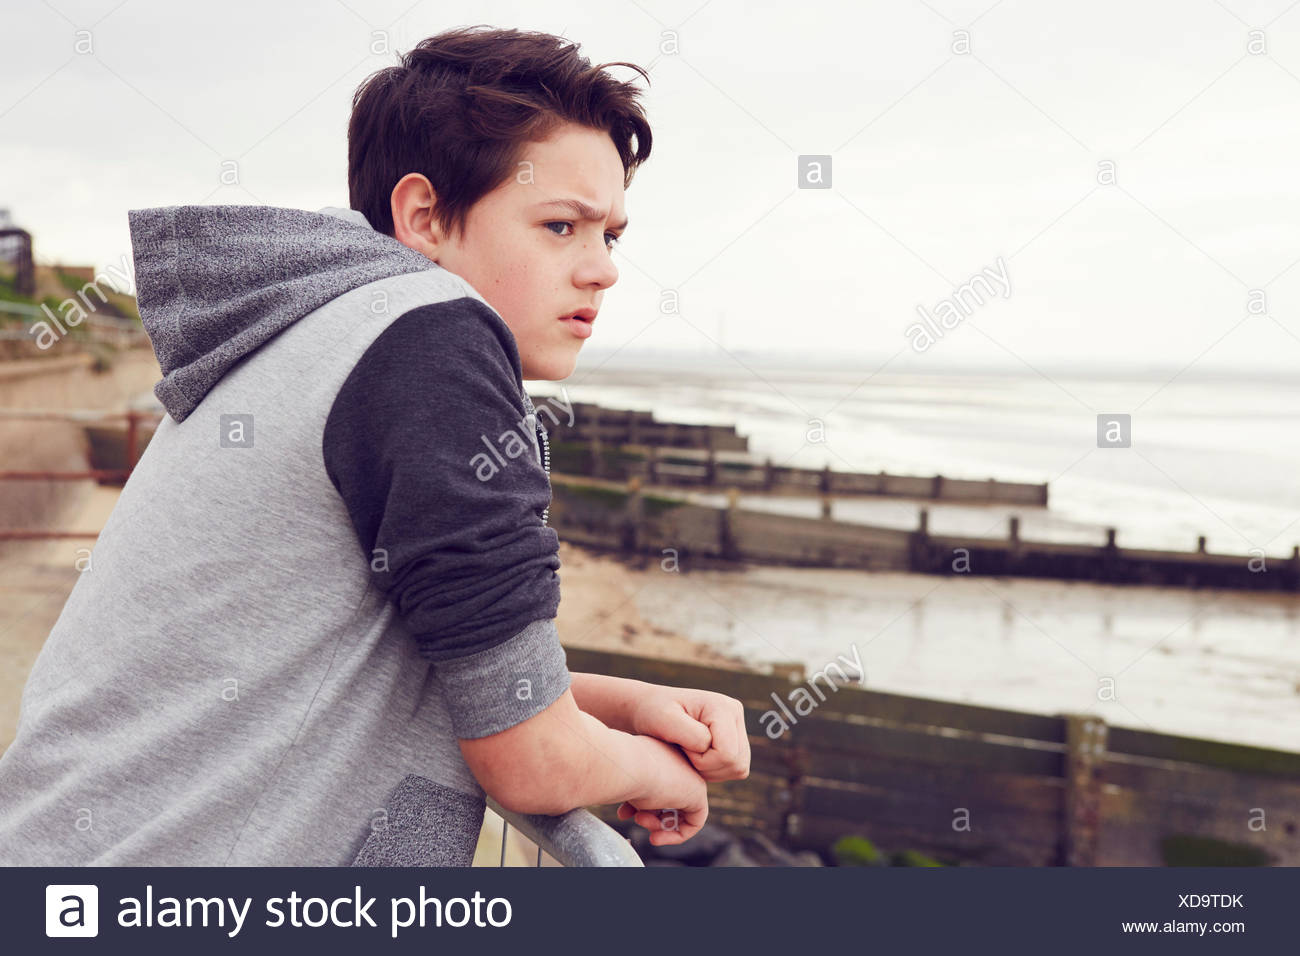 Unhappy teenage boy looking out from railings, Southend on Sea, Essex, UK - Stock Image